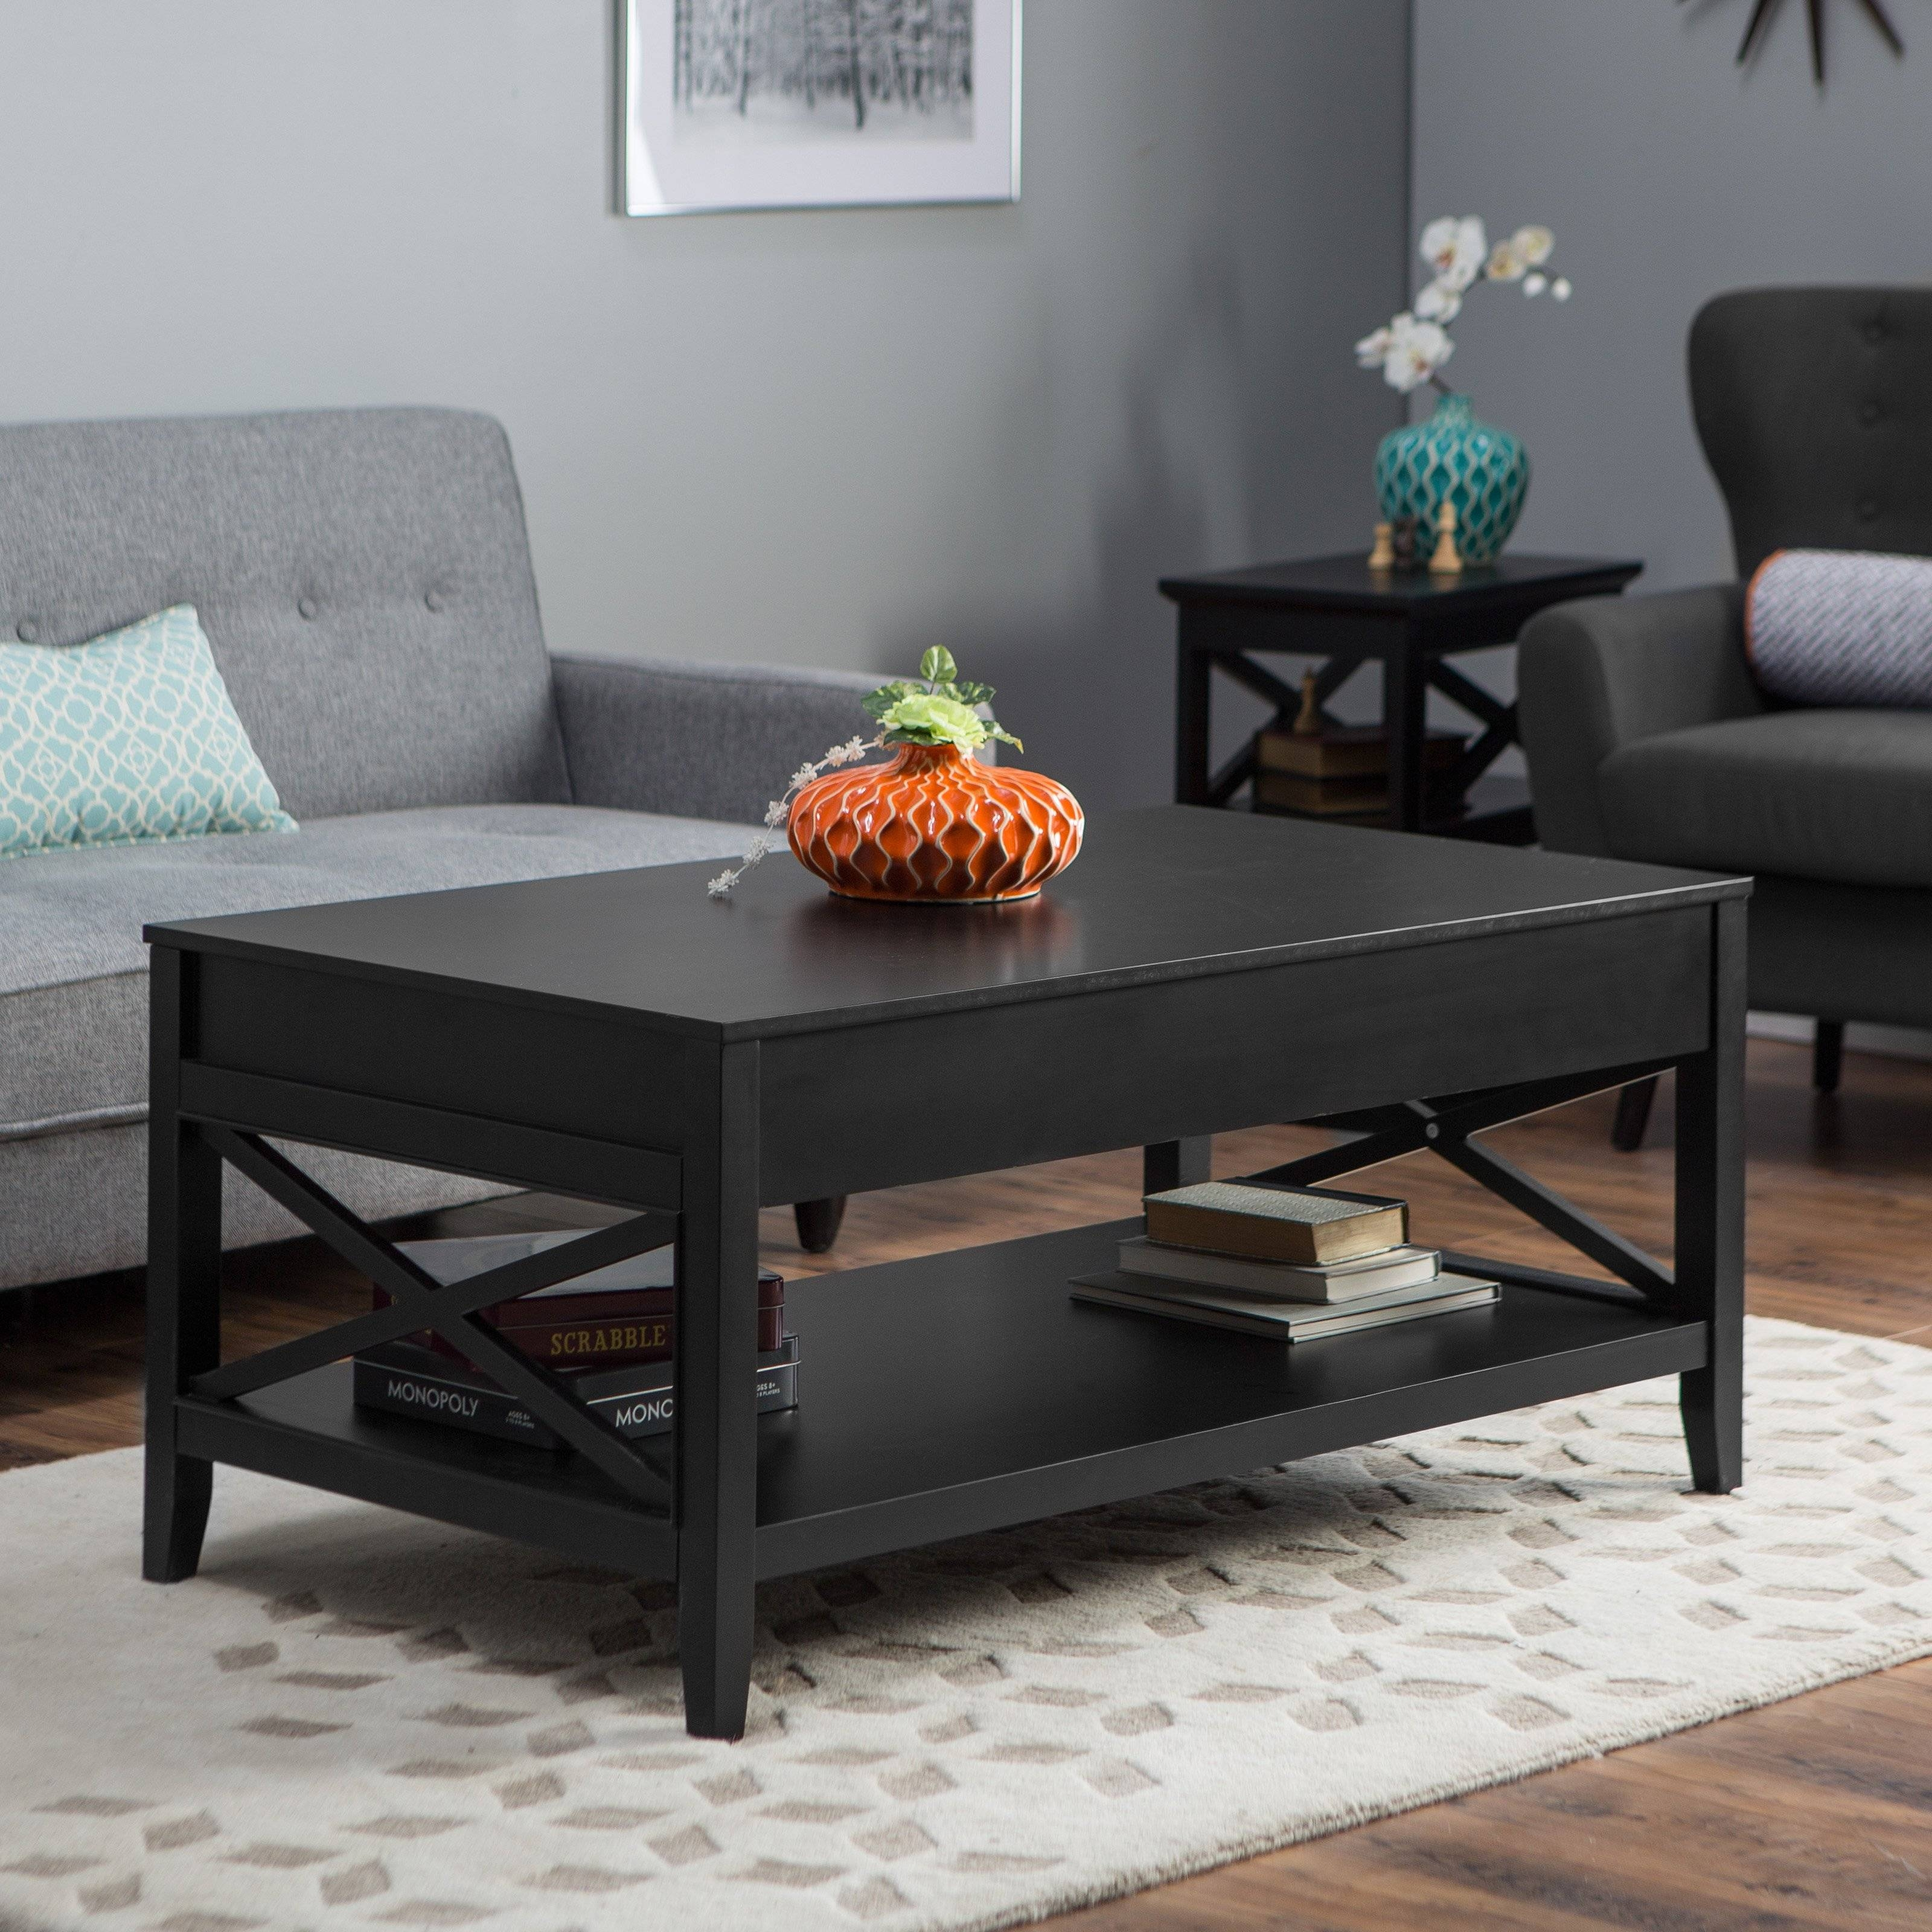 Belham Living Hampton Storage And Lift Top Coffee Table | Hayneedle with regard to Coffee Tables With Lifting Top (Image 2 of 30)